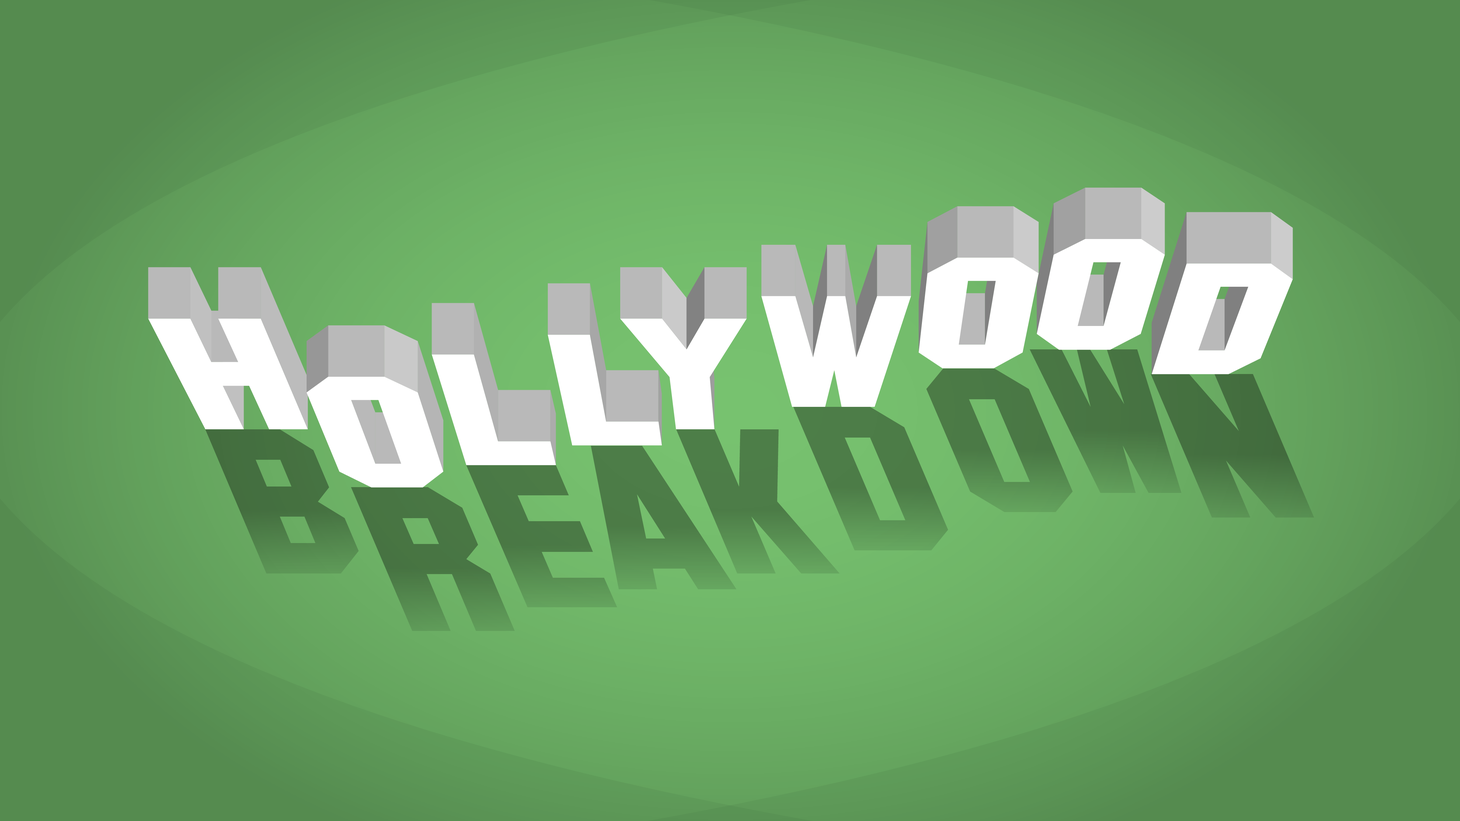 A special TV breakdown with Lesley Goldberg. A new law in California means studios cannot ask TV actors what they made on previous jobs, which is a good thing for actors who have been stymied by low pay in the past.